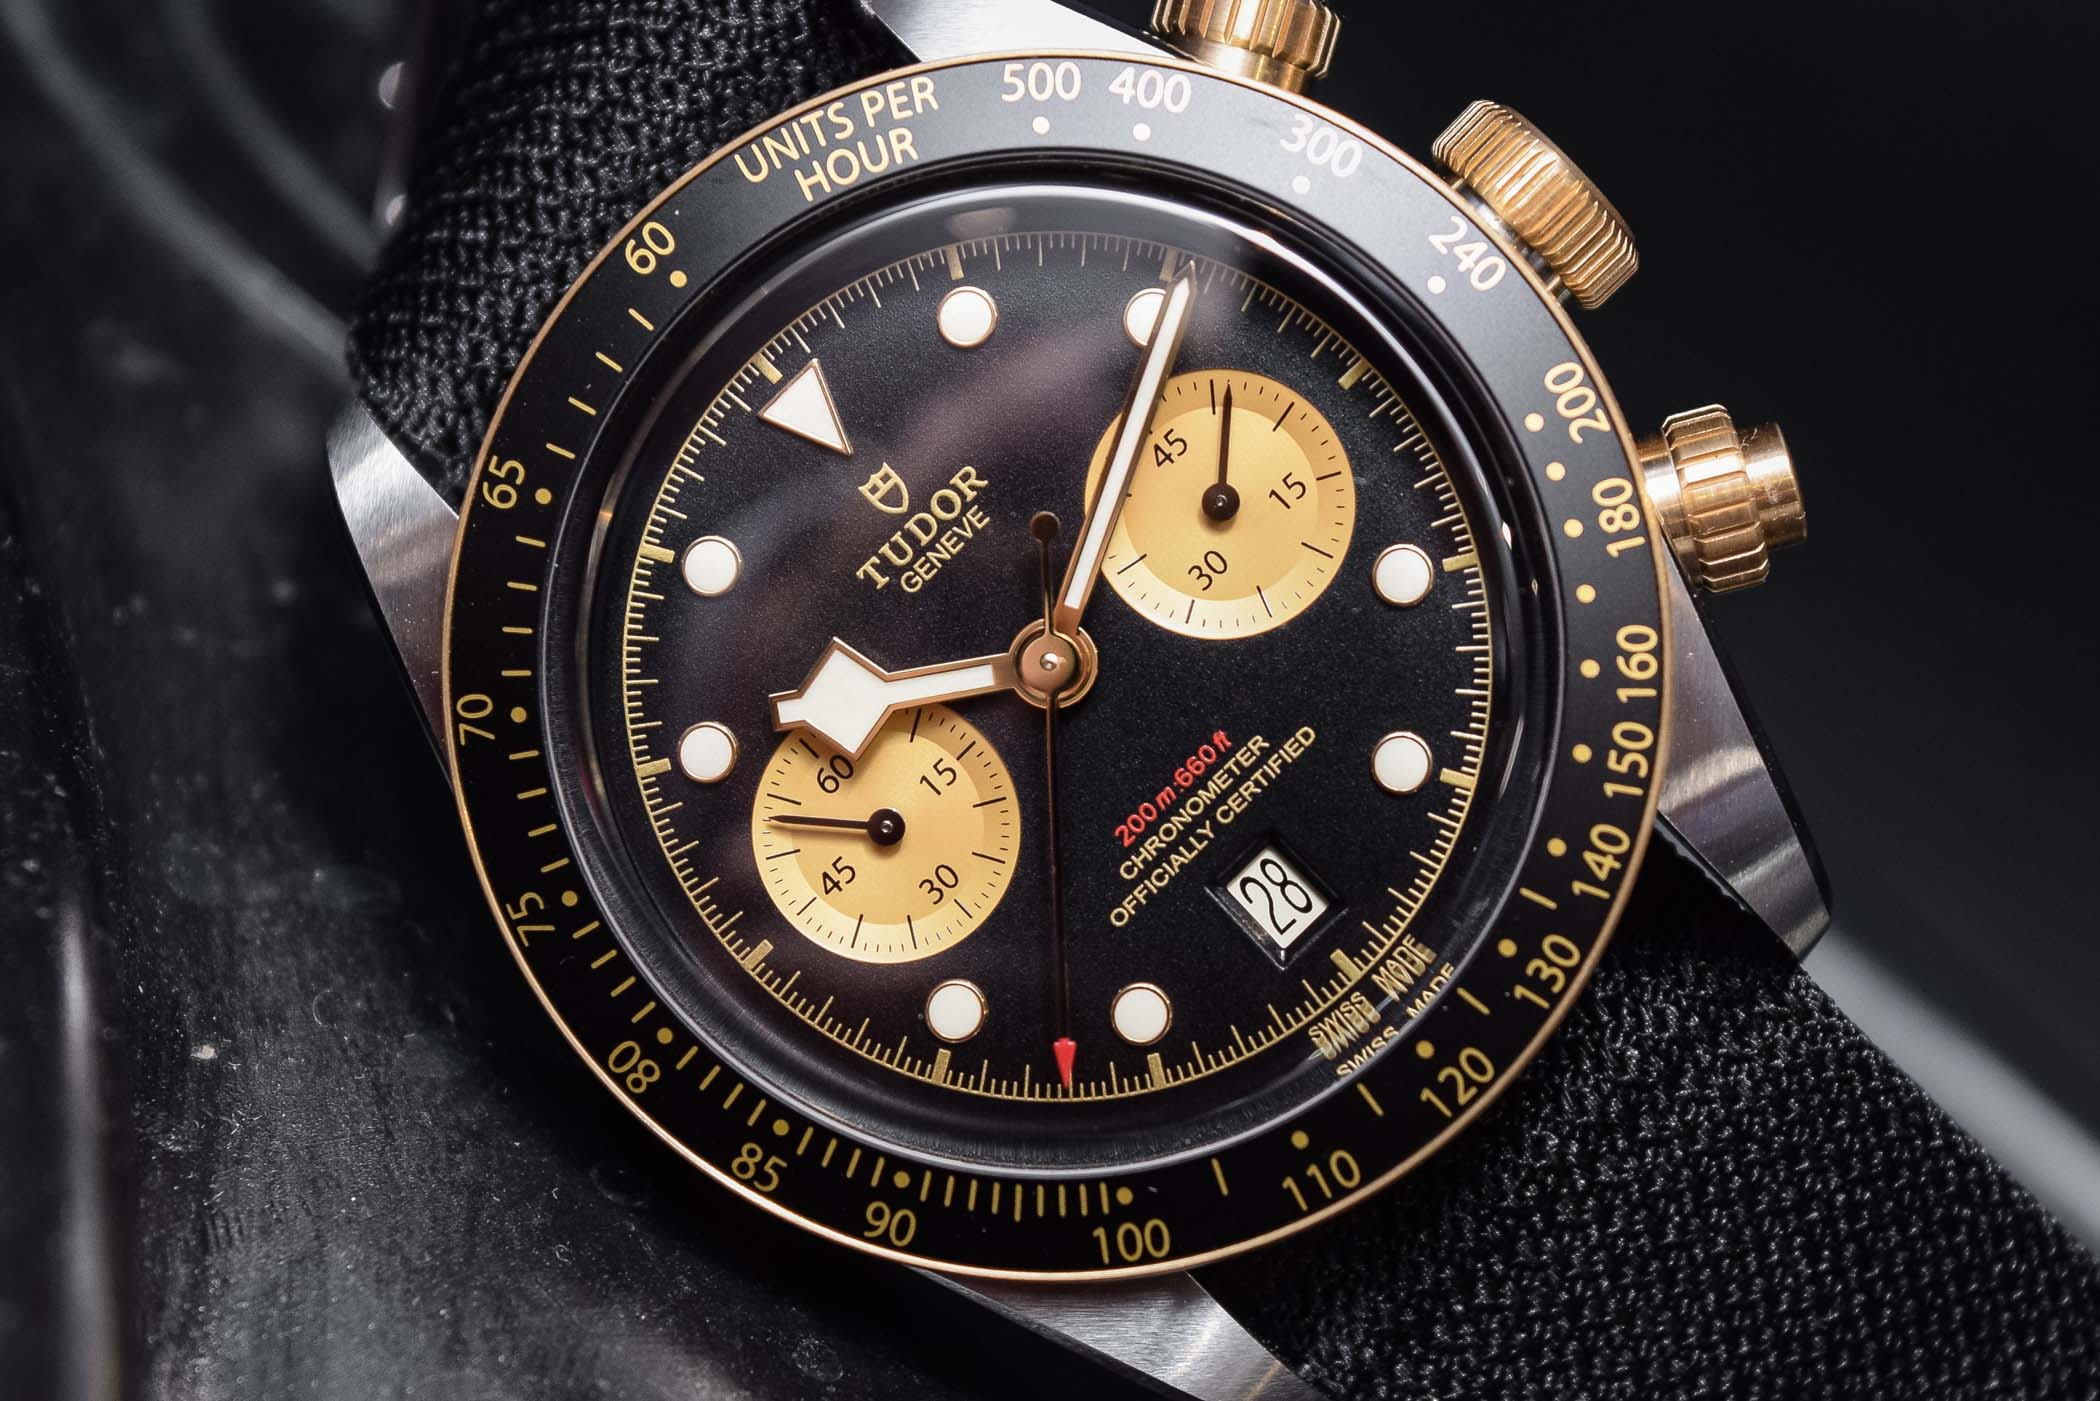 Baselworld 2019 Tudor Black Bay Chrono S Amp G 79363n Hands